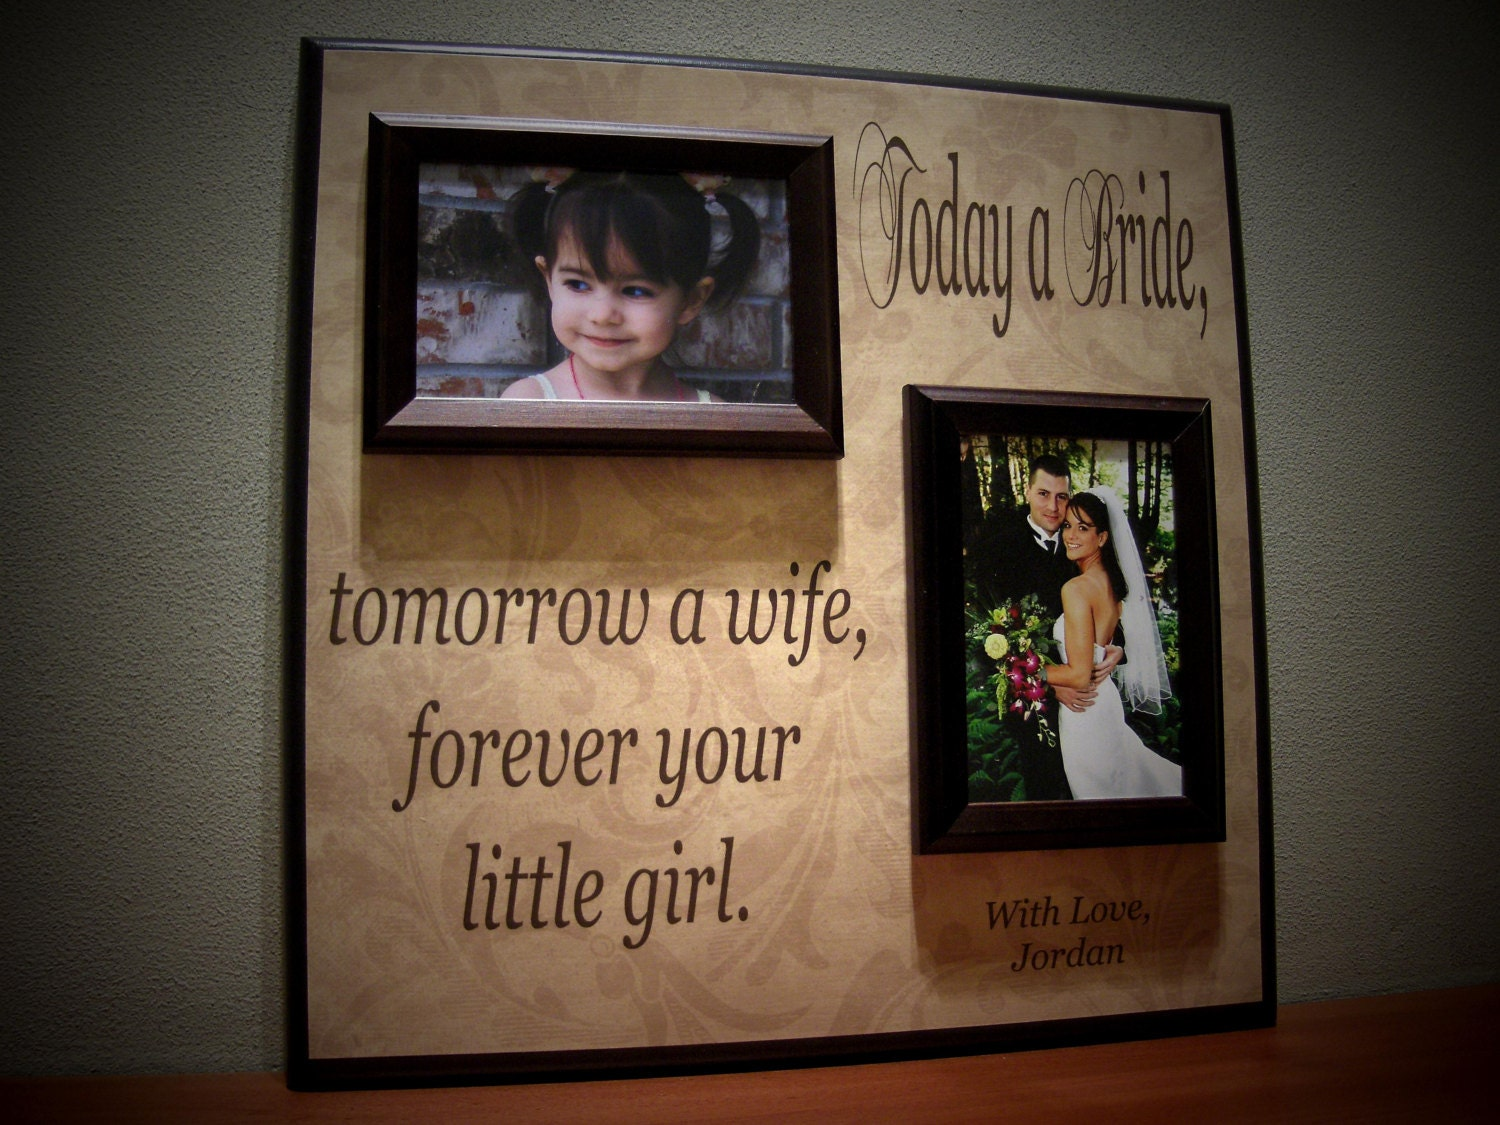 Today A Bride Tomorrow A Wife, Personalized Picture Frame